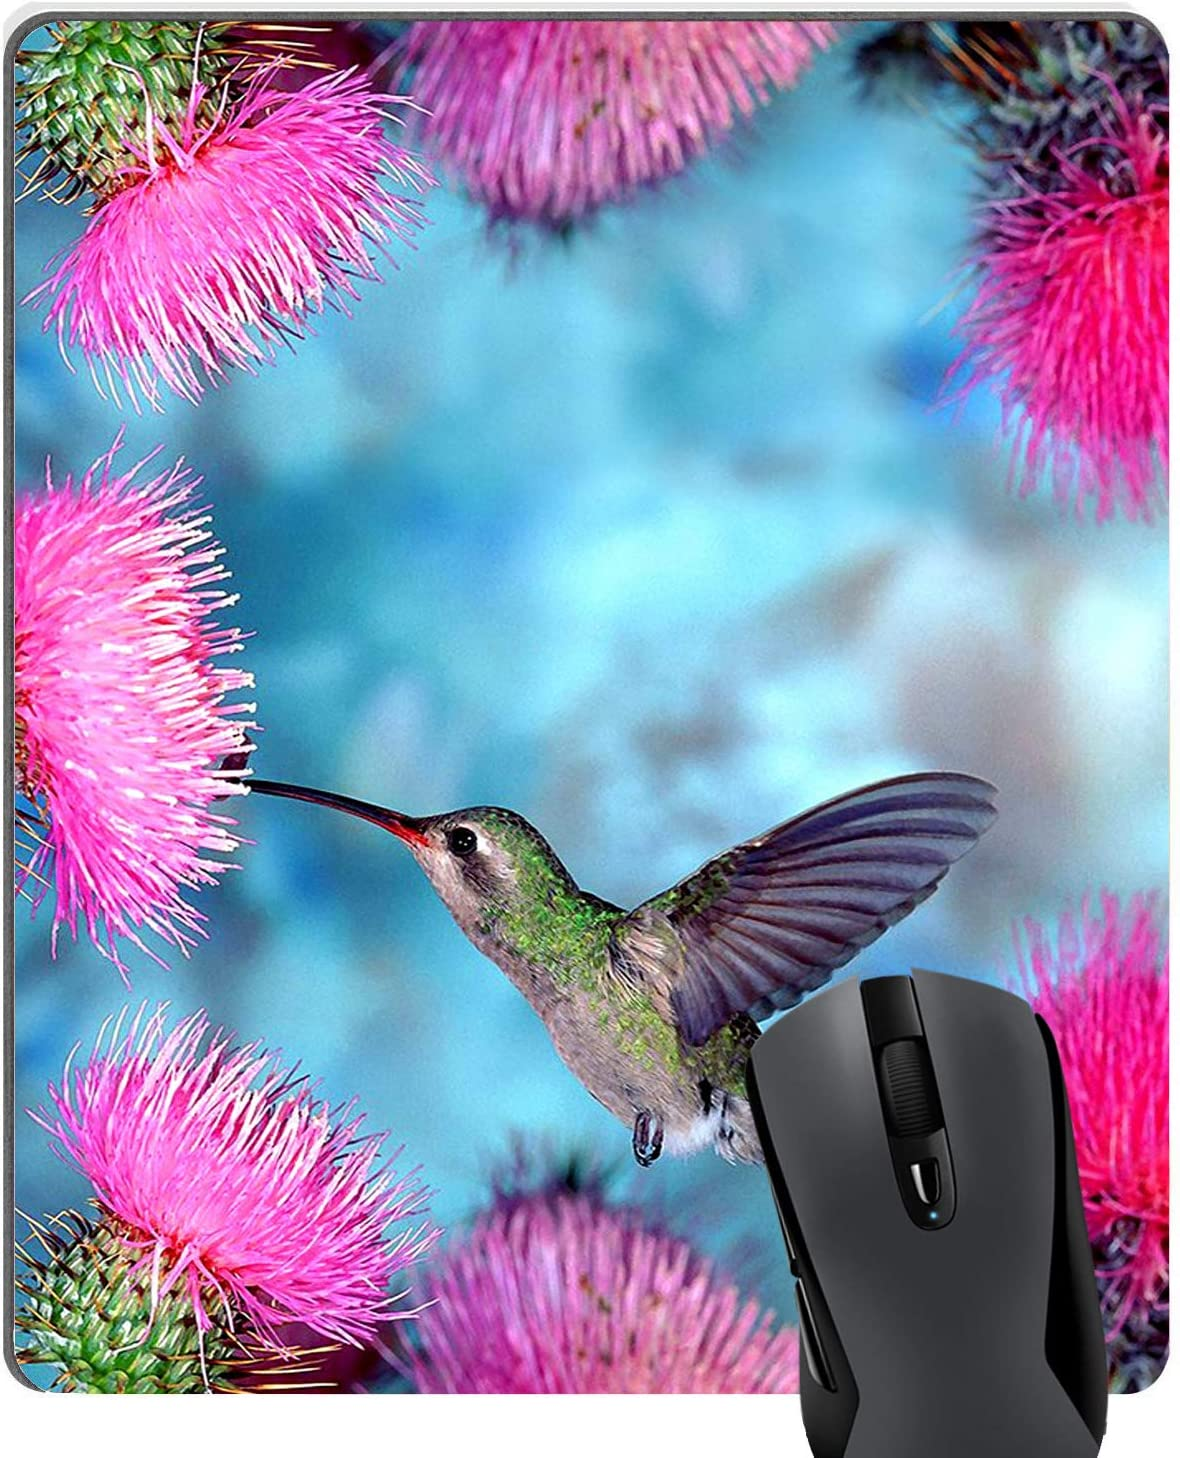 Knseva Cute Hummingbird Pink Dandelion Flowers Large Rectangle Mouse Pad